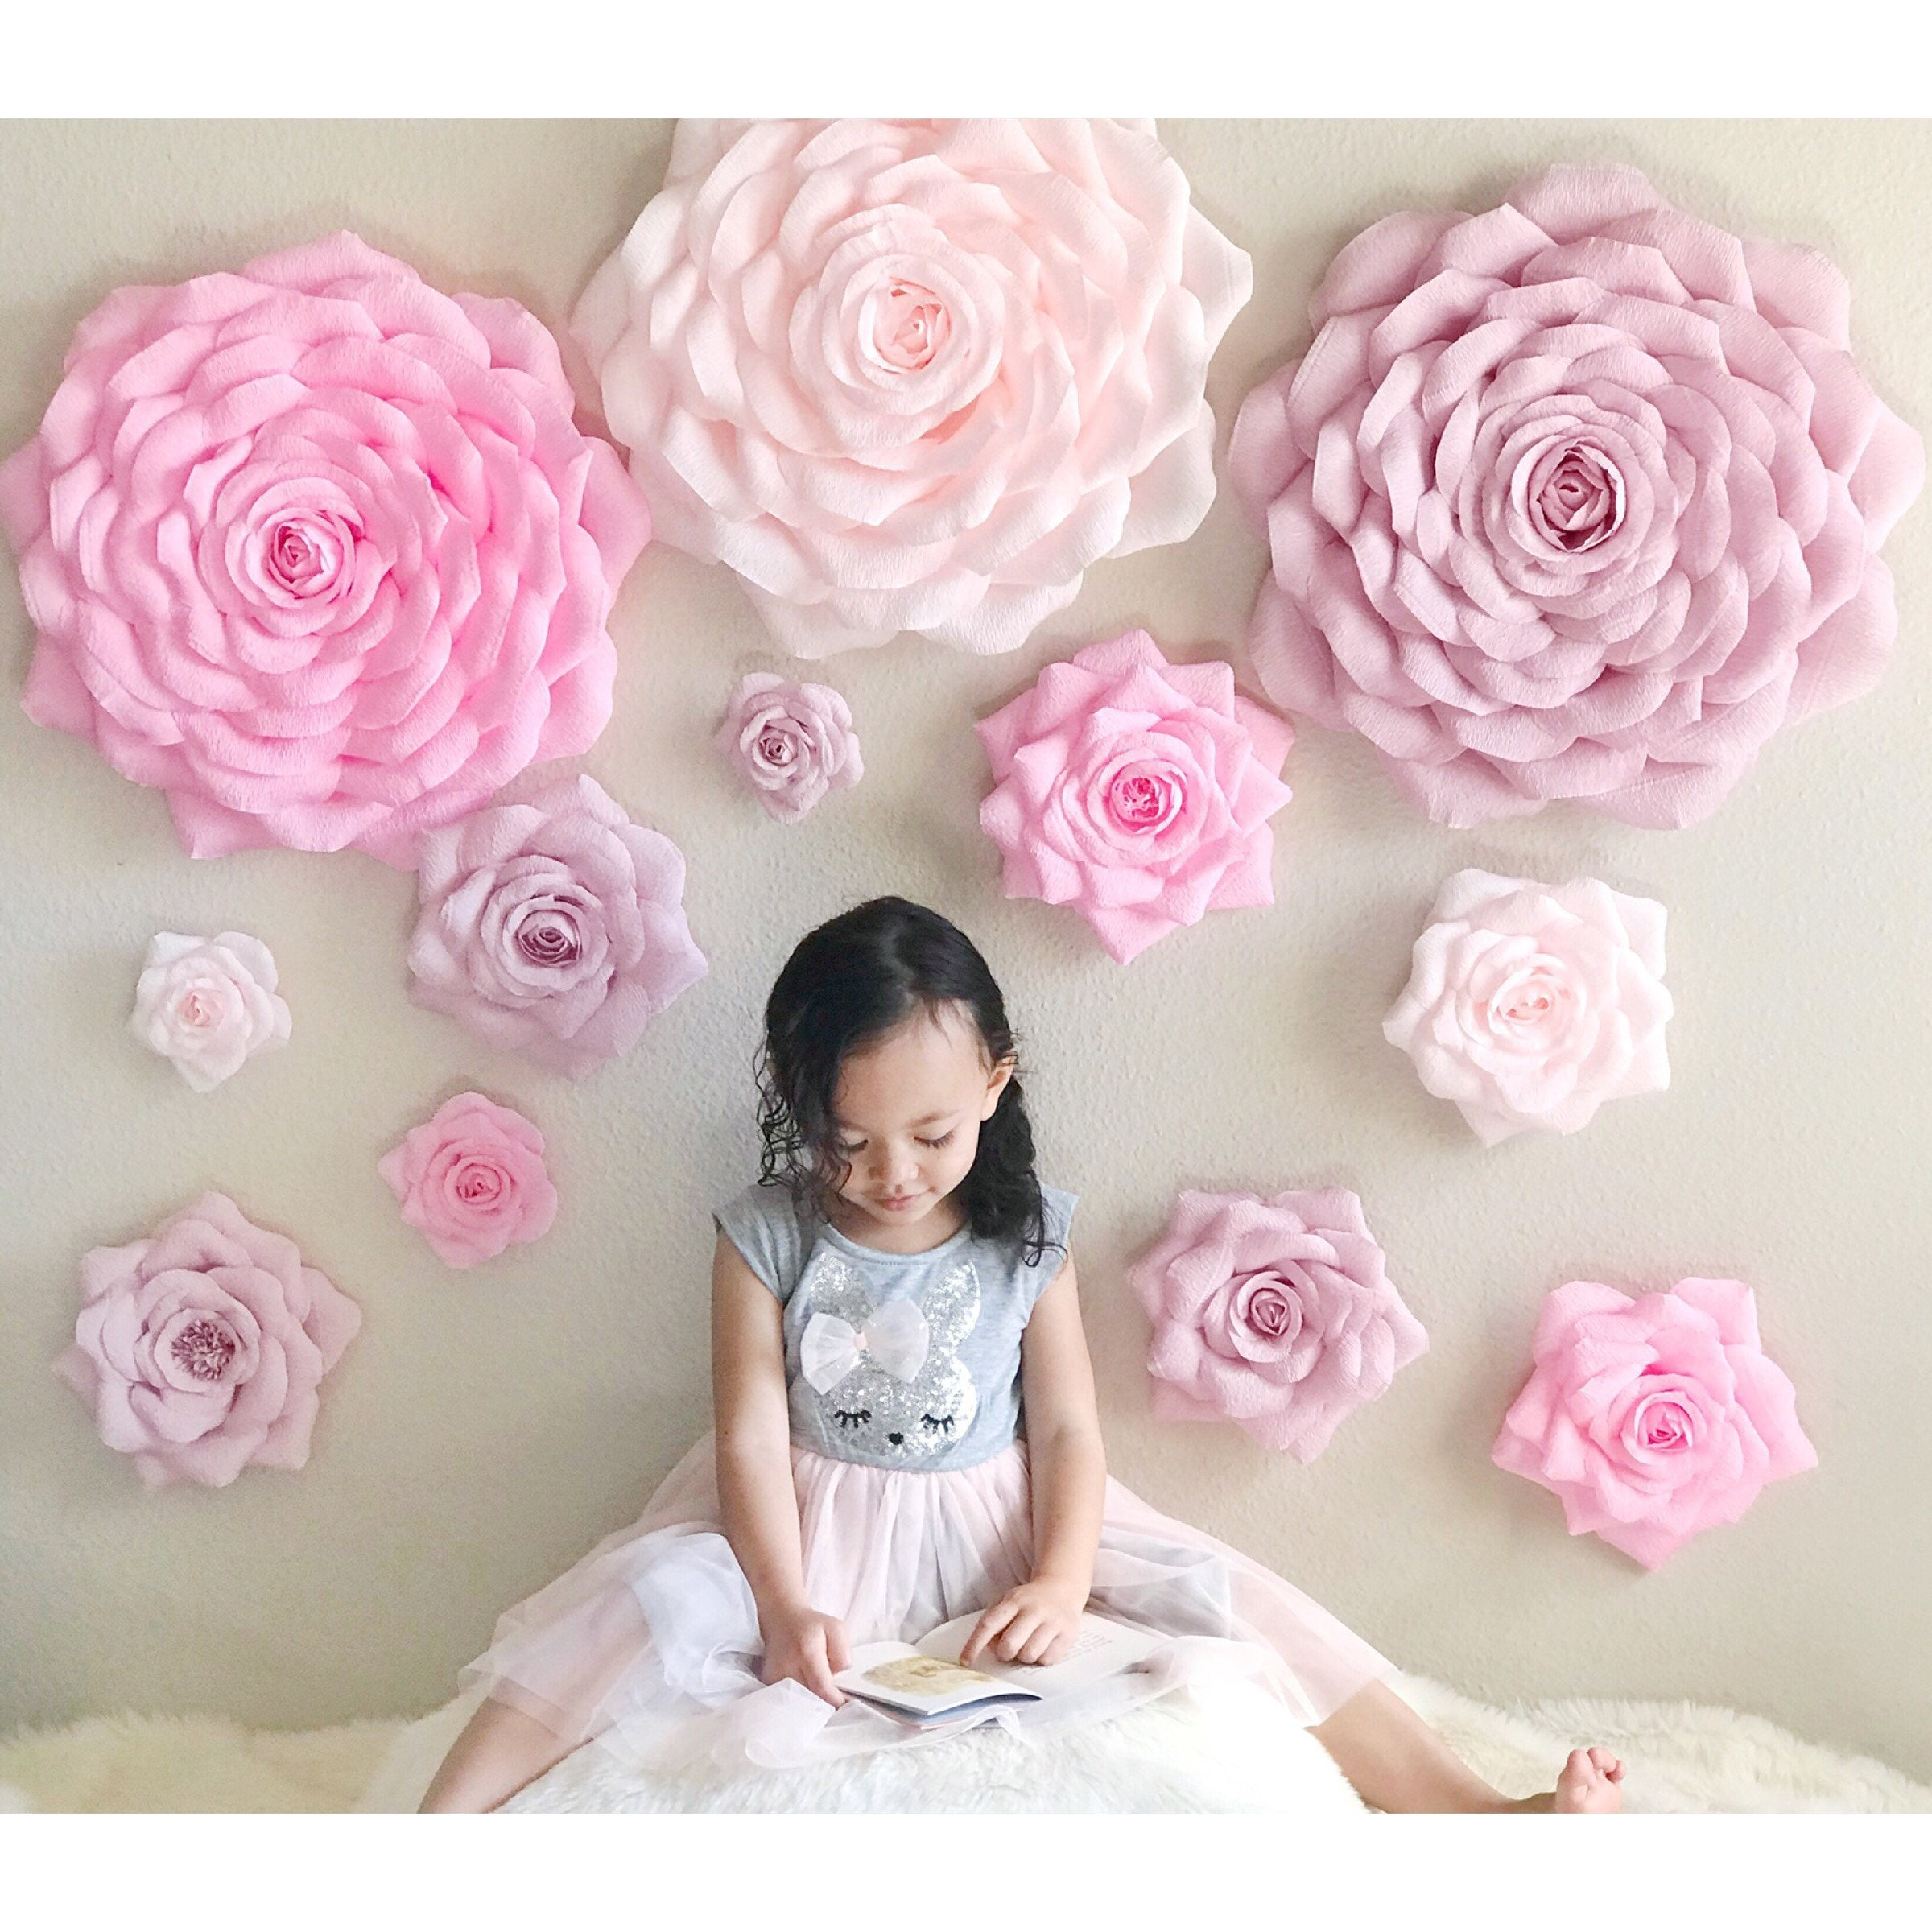 Crepe Paper Rose Backdrop Large Paper Flowers Nursery Wall Etsy